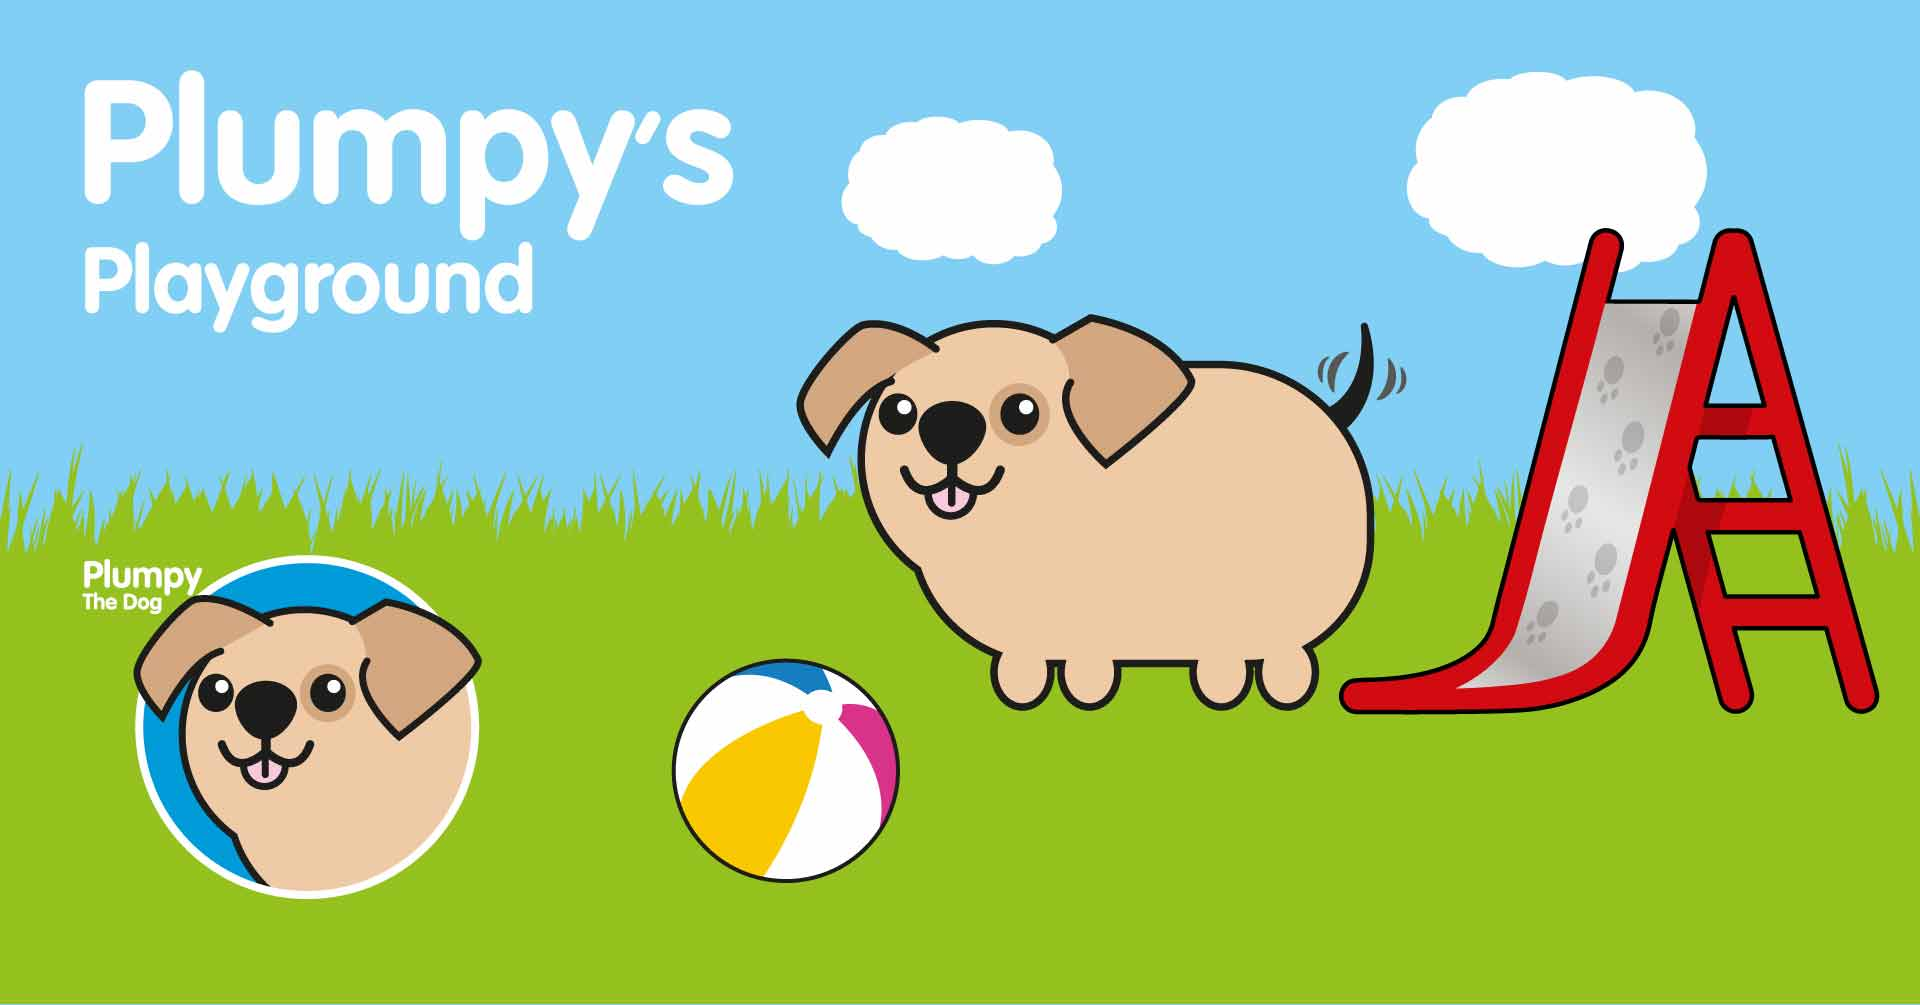 Decorative banner of Plumpy's Playground